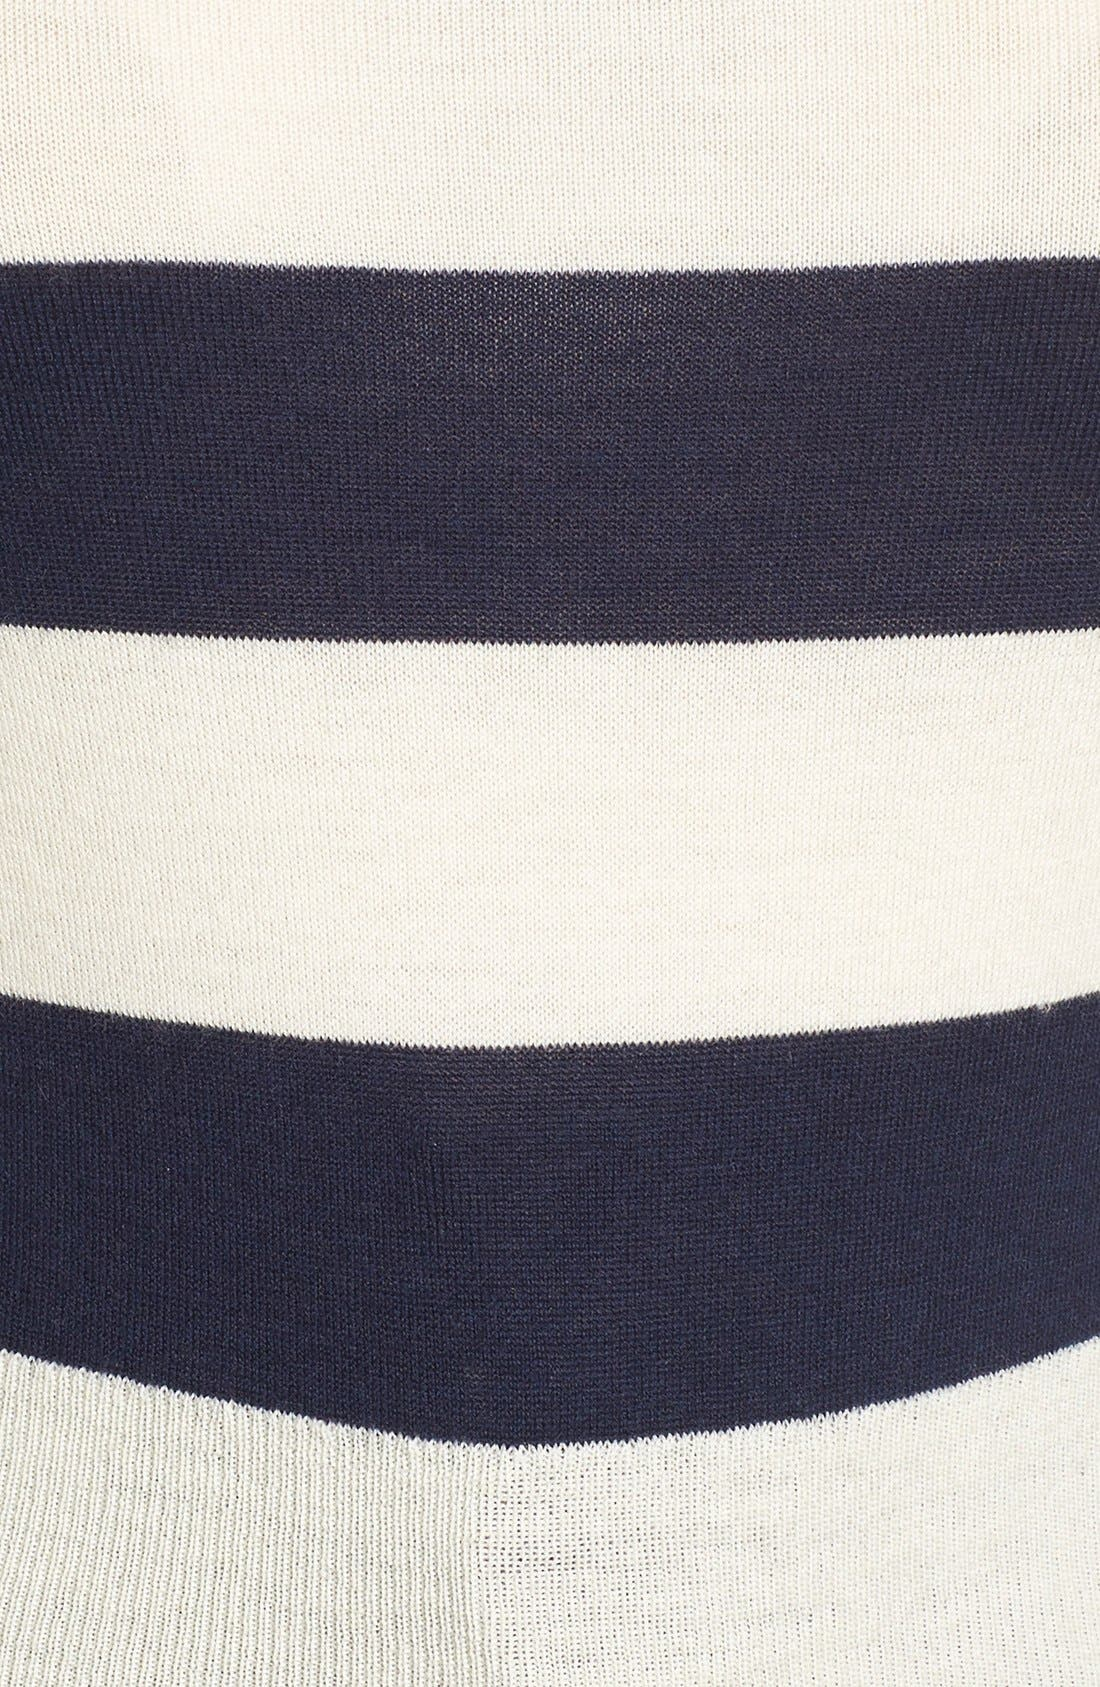 Stripe Wool & Cashmere Pullover,                             Alternate thumbnail 5, color,                             400